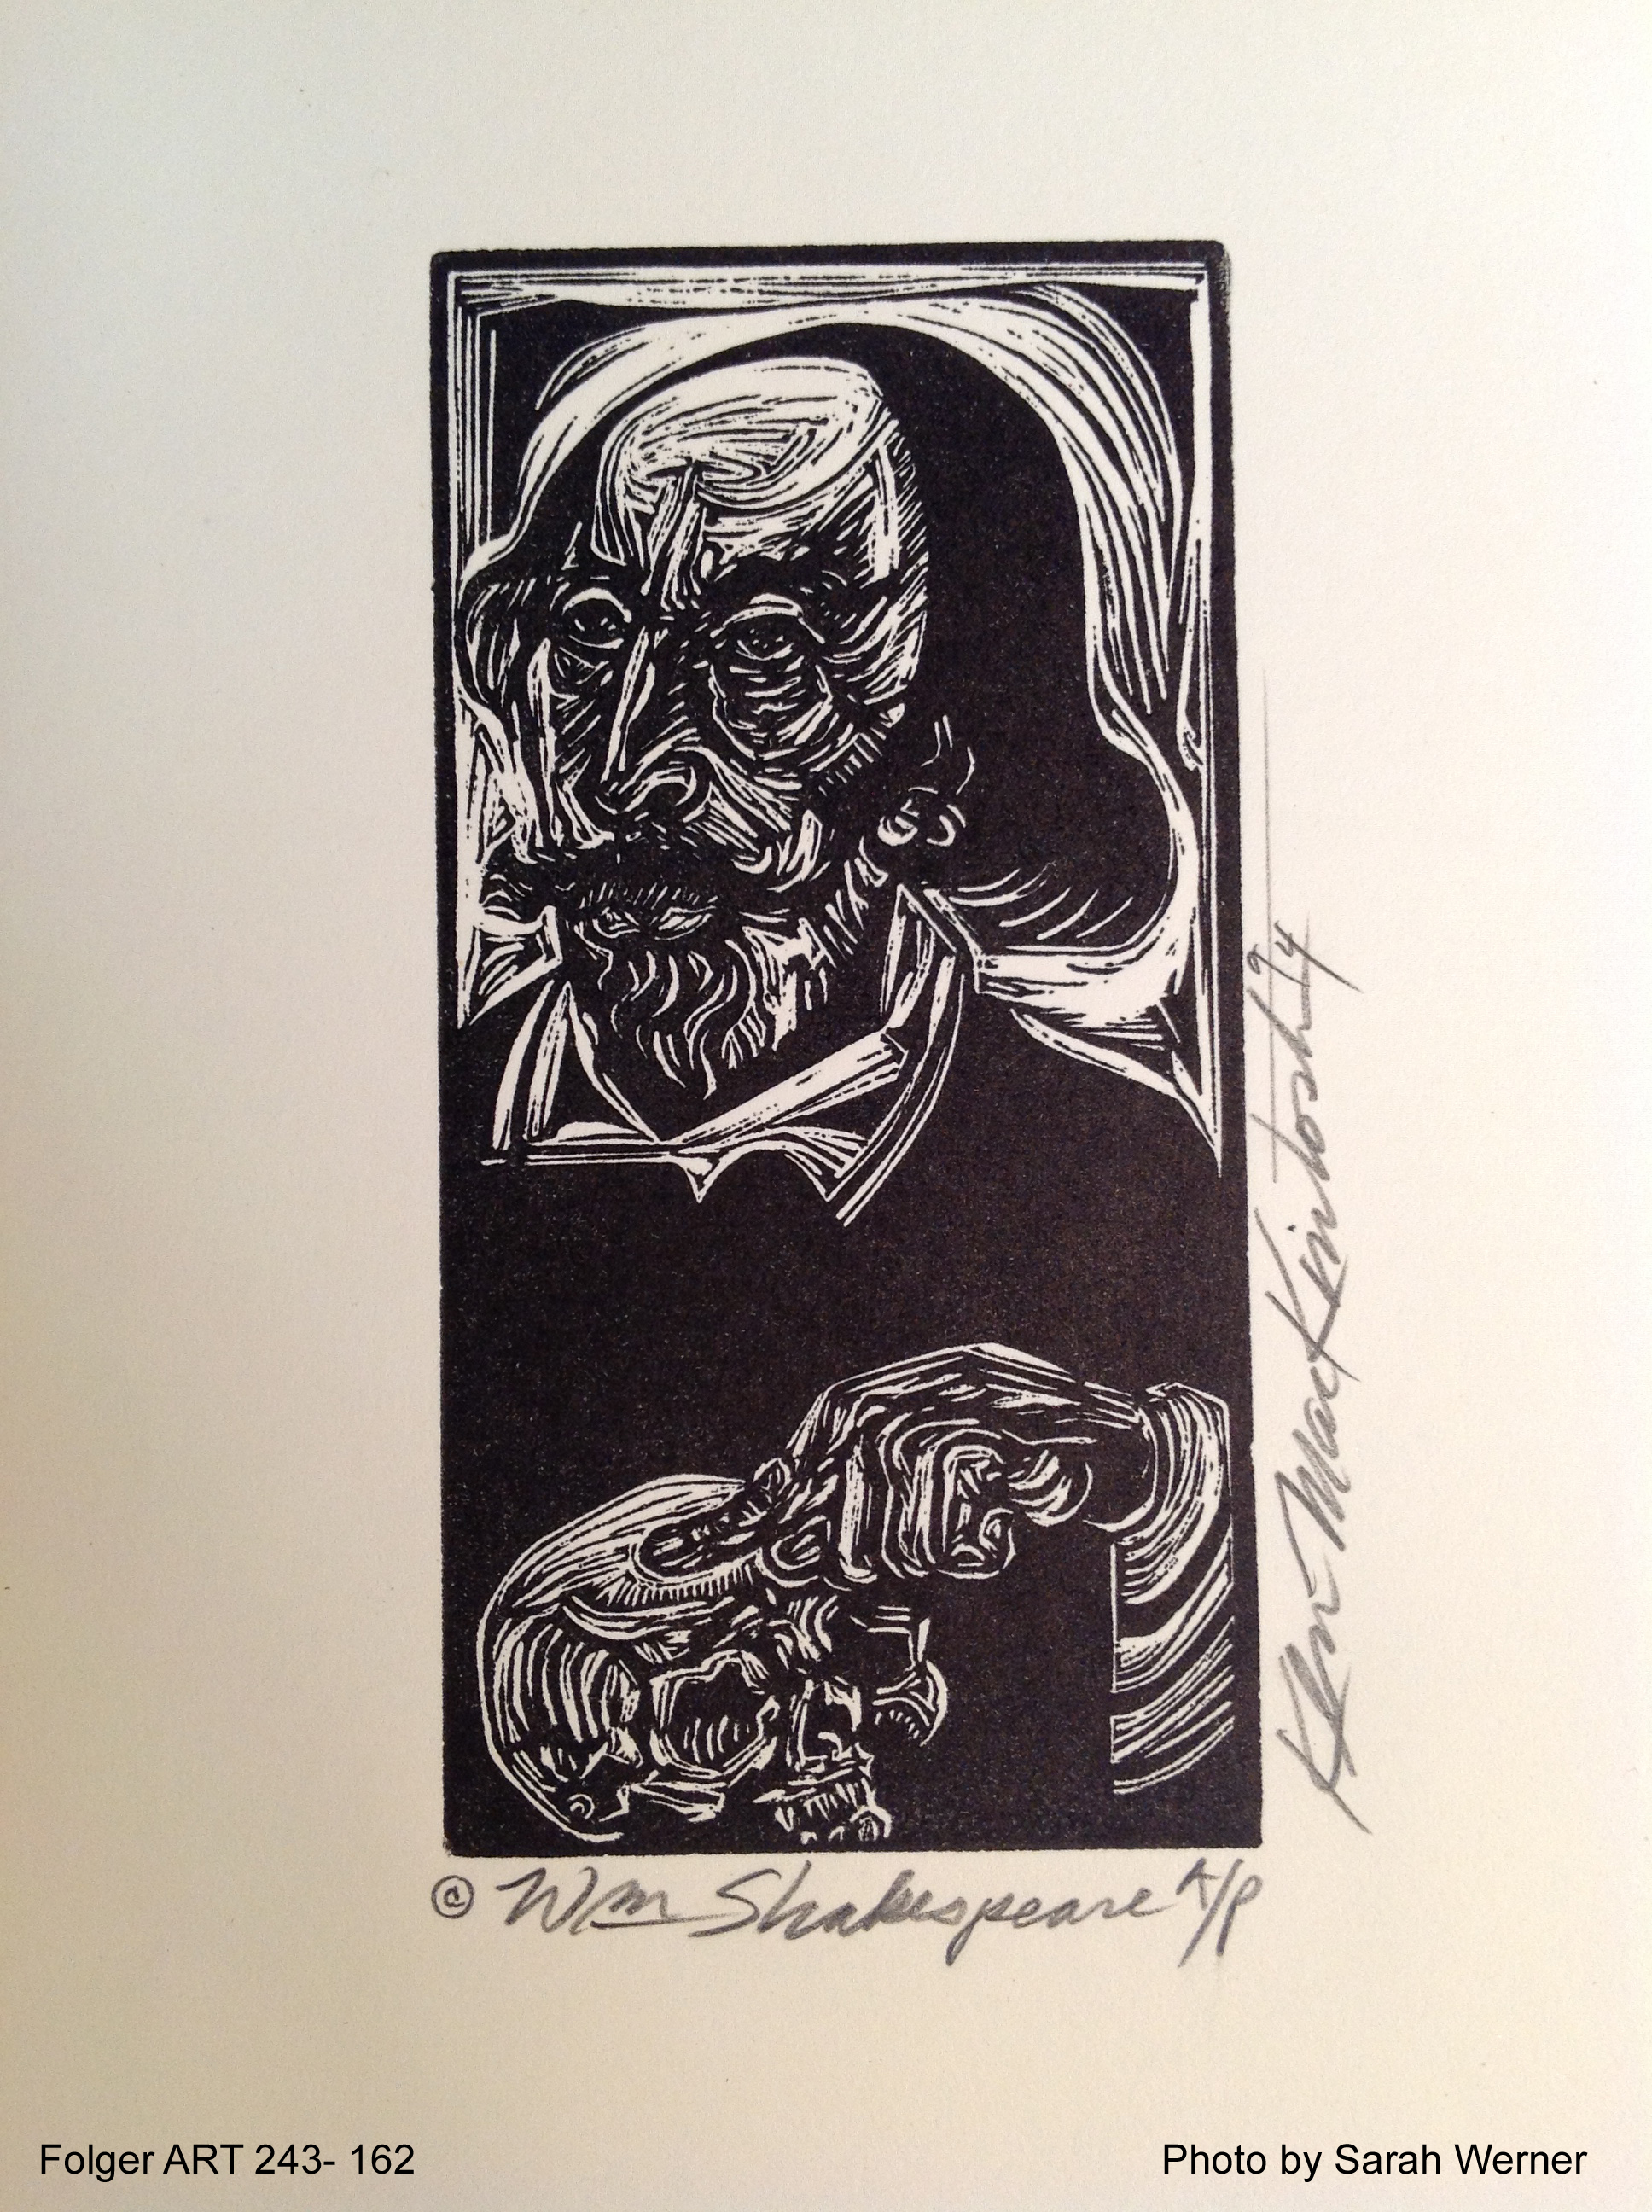 """Wm. Shakespeare"" by Ken MacKintosh, 1994"